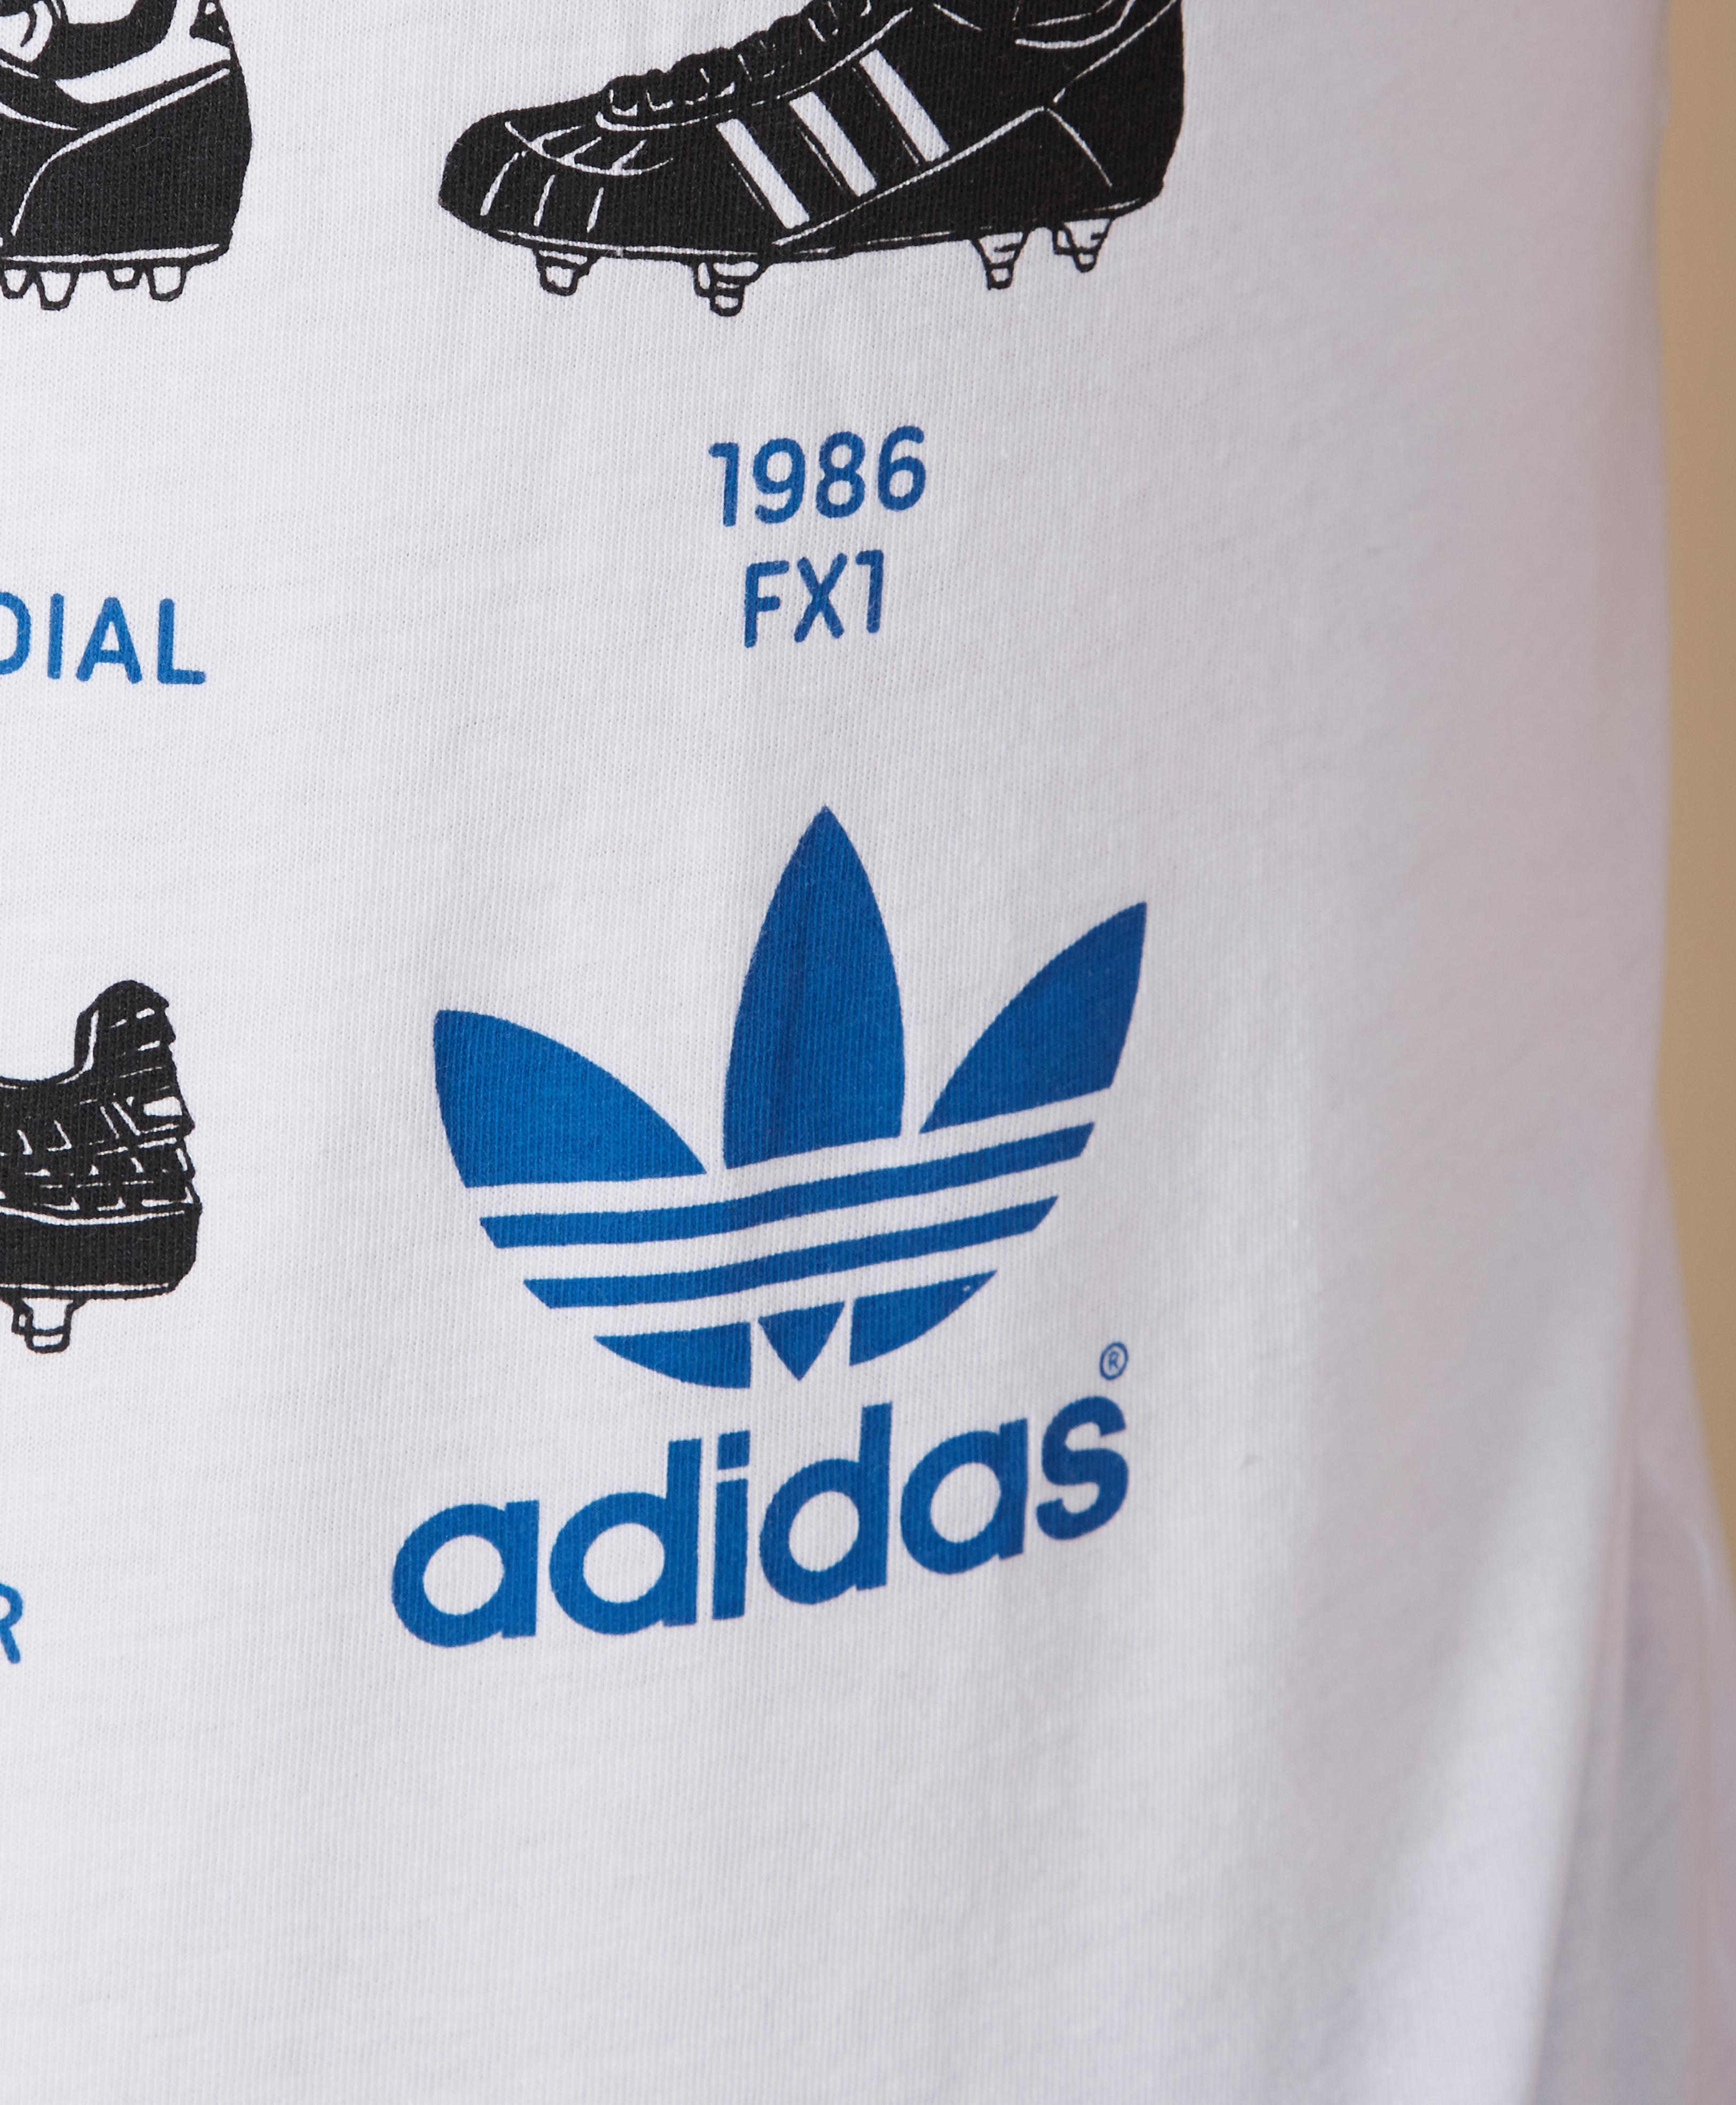 adidas history 1 Welcome to adidas shop for adidas shoes, clothing and view new collections for adidas originals, running, football, training and much more.